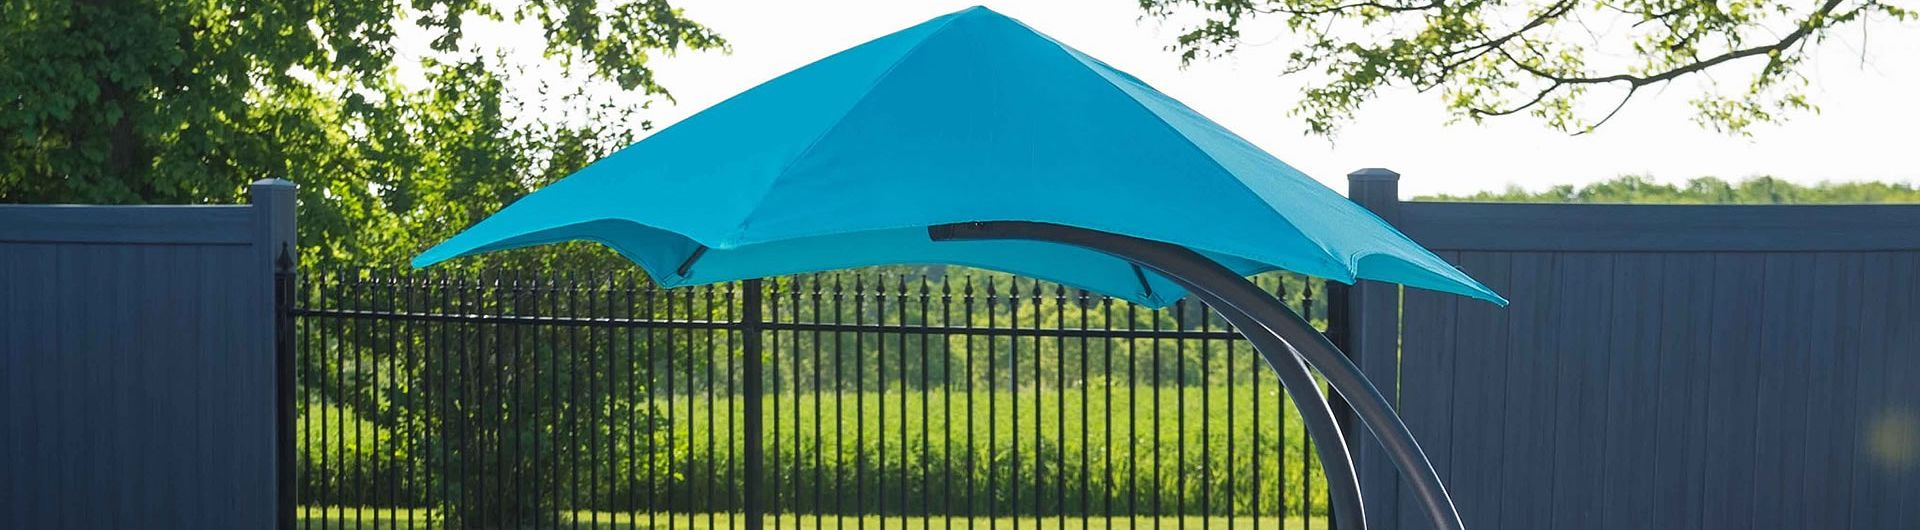 Vivere Umbrella blue